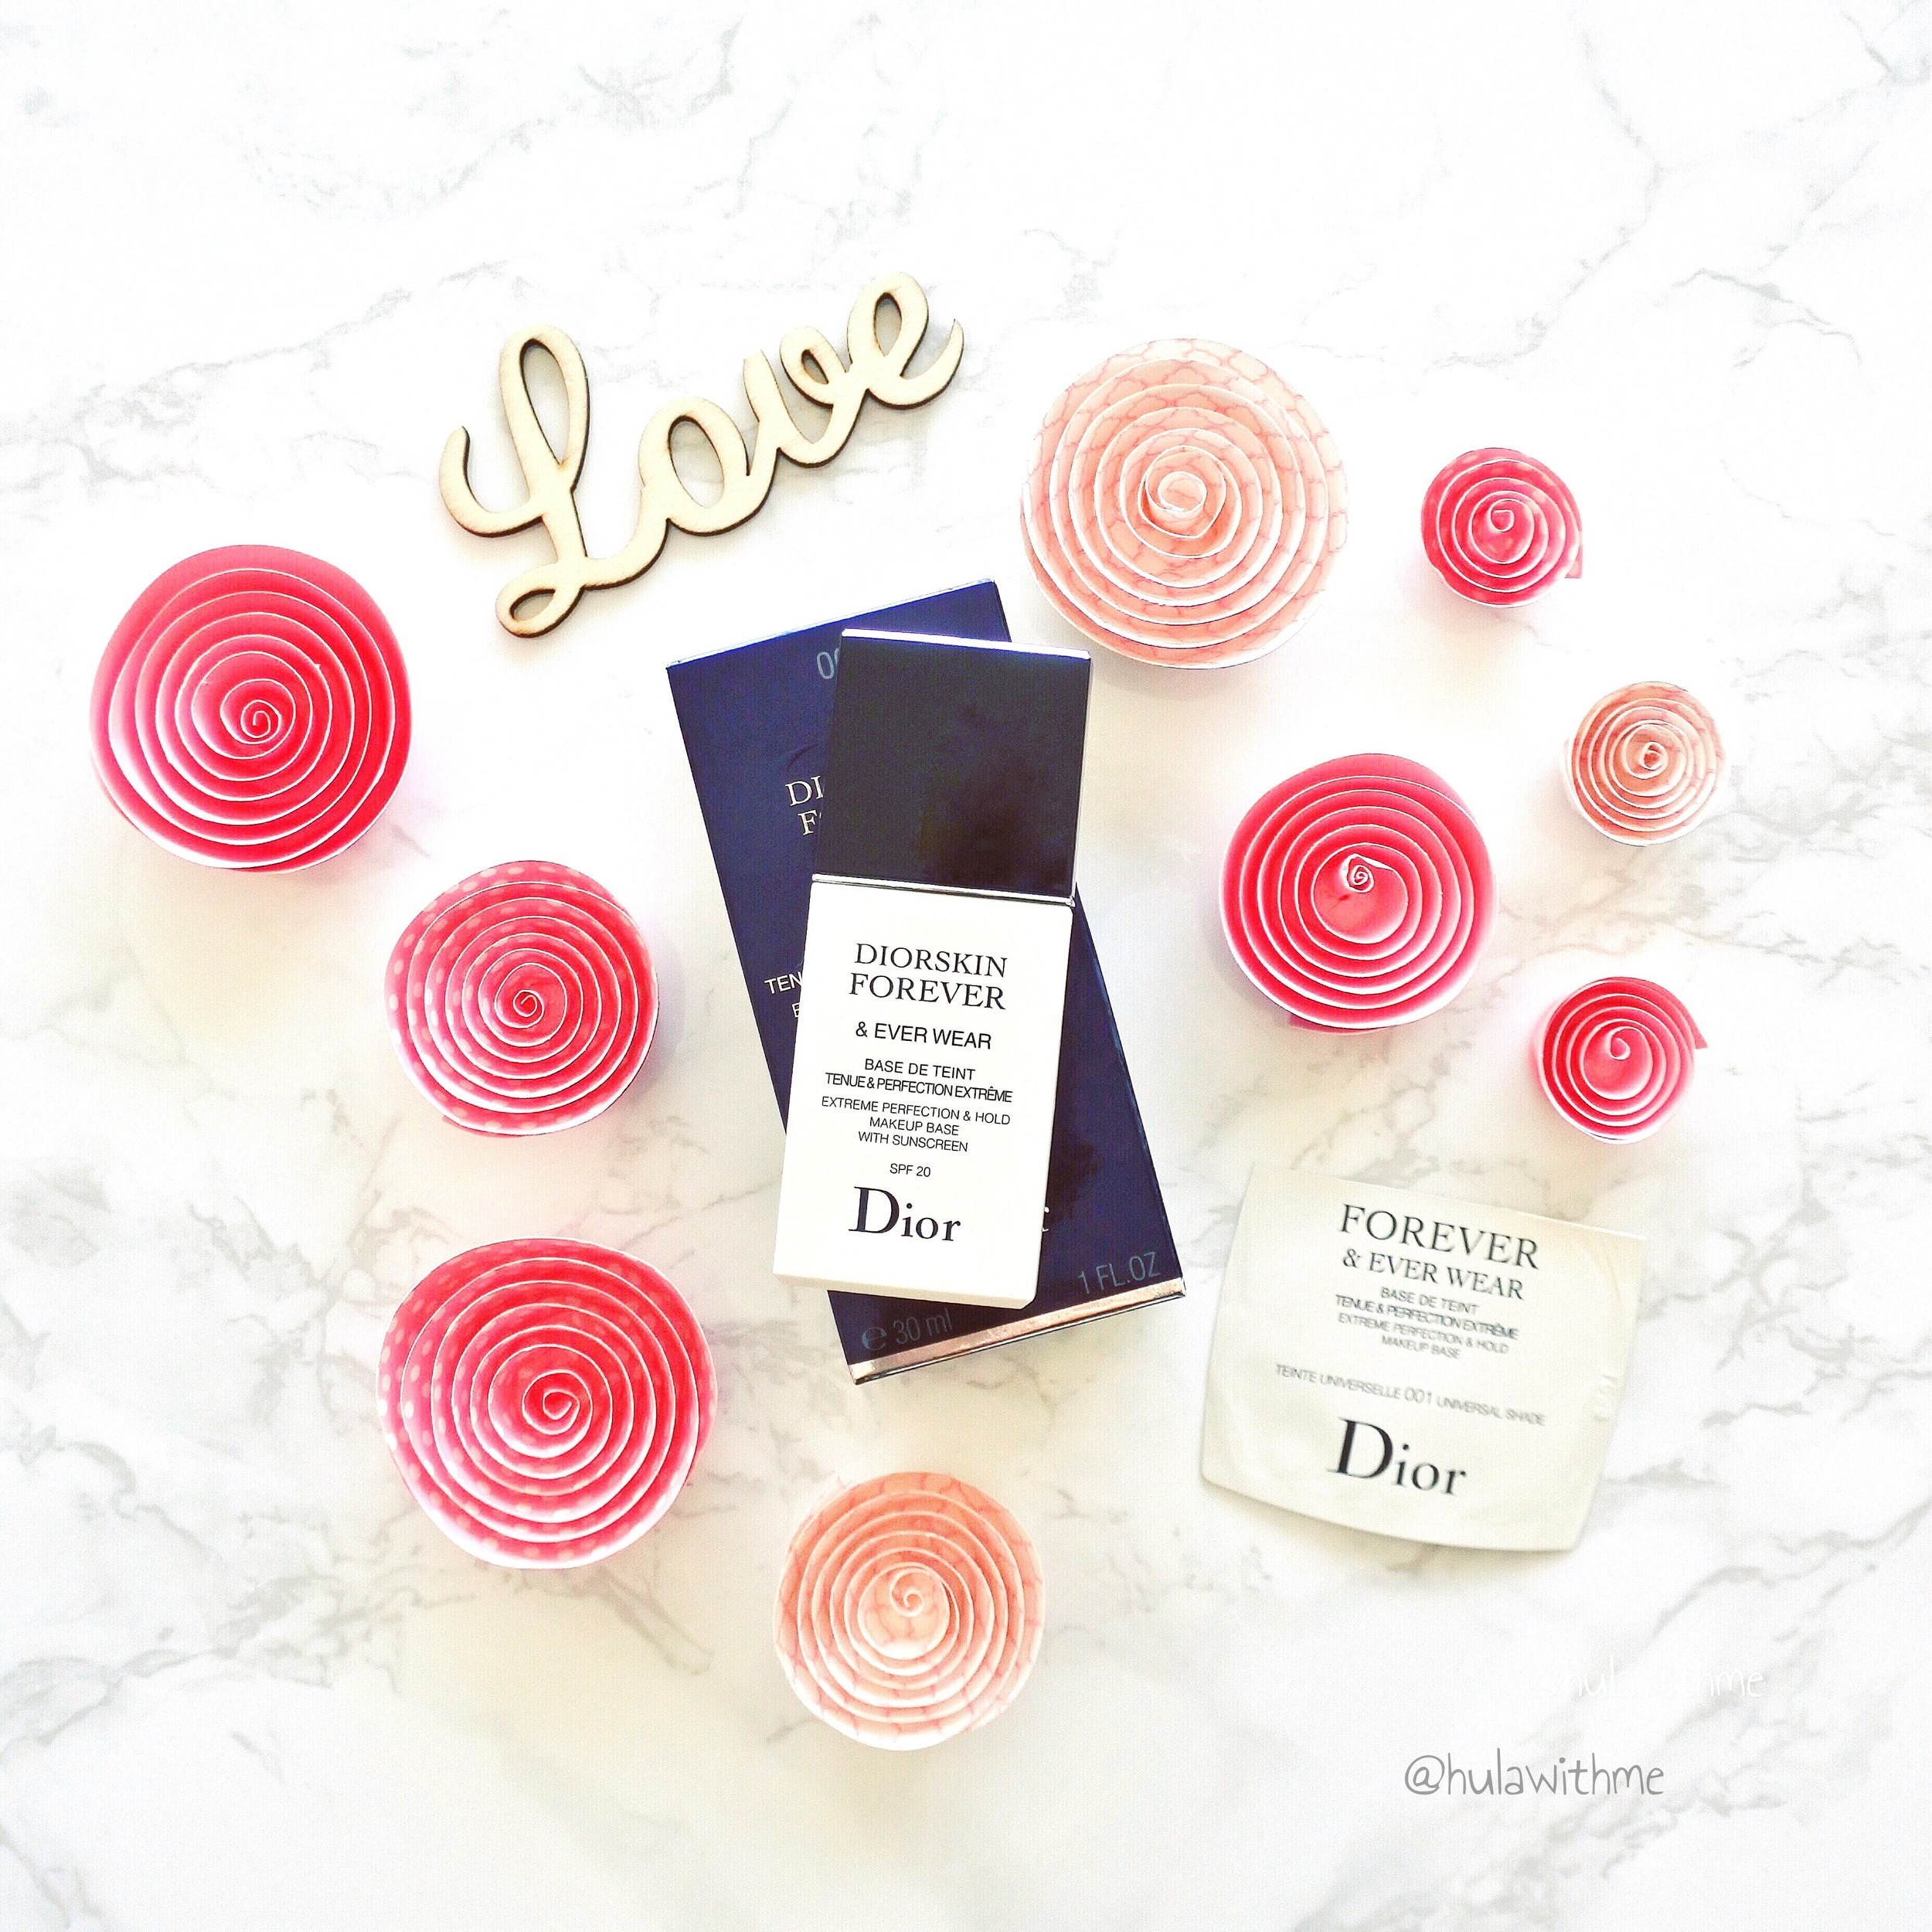 Review of Dior Forever & Ever Wear Extreme Perfection & Hold Makeup Base